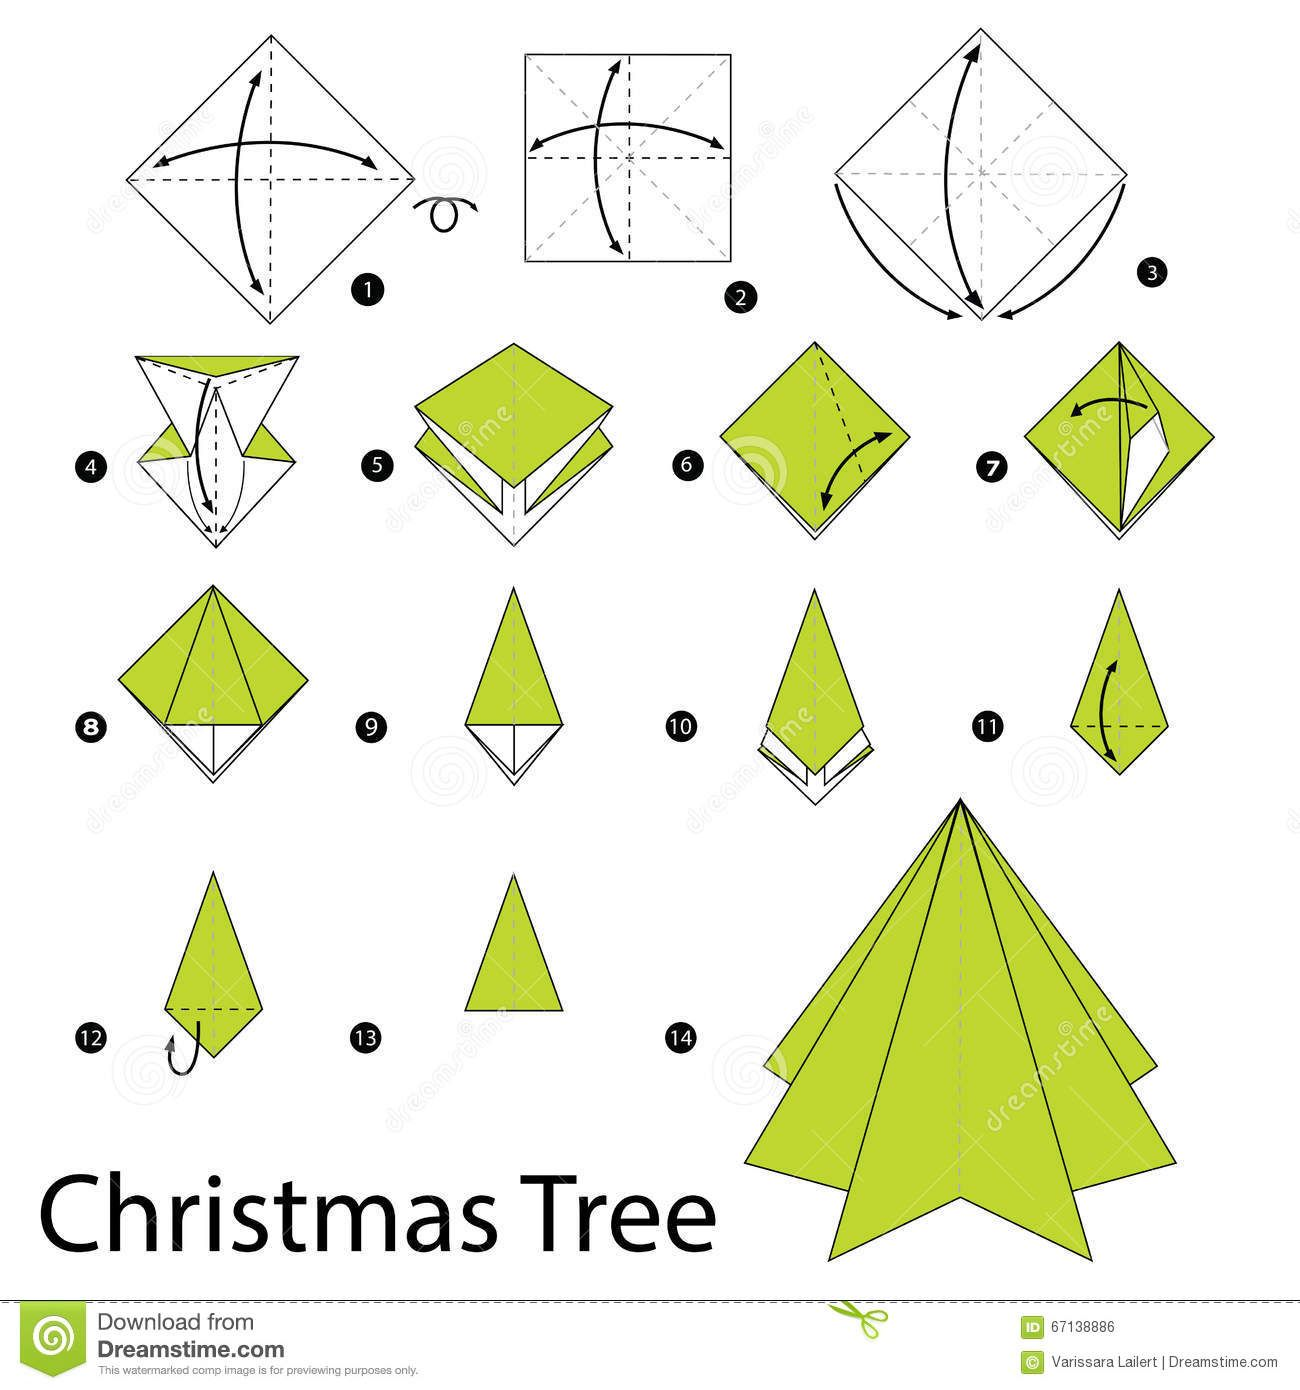 Pin By Ani Wynd On Papirogami Christmas Origami Origami Easy Origami Christmas Tree